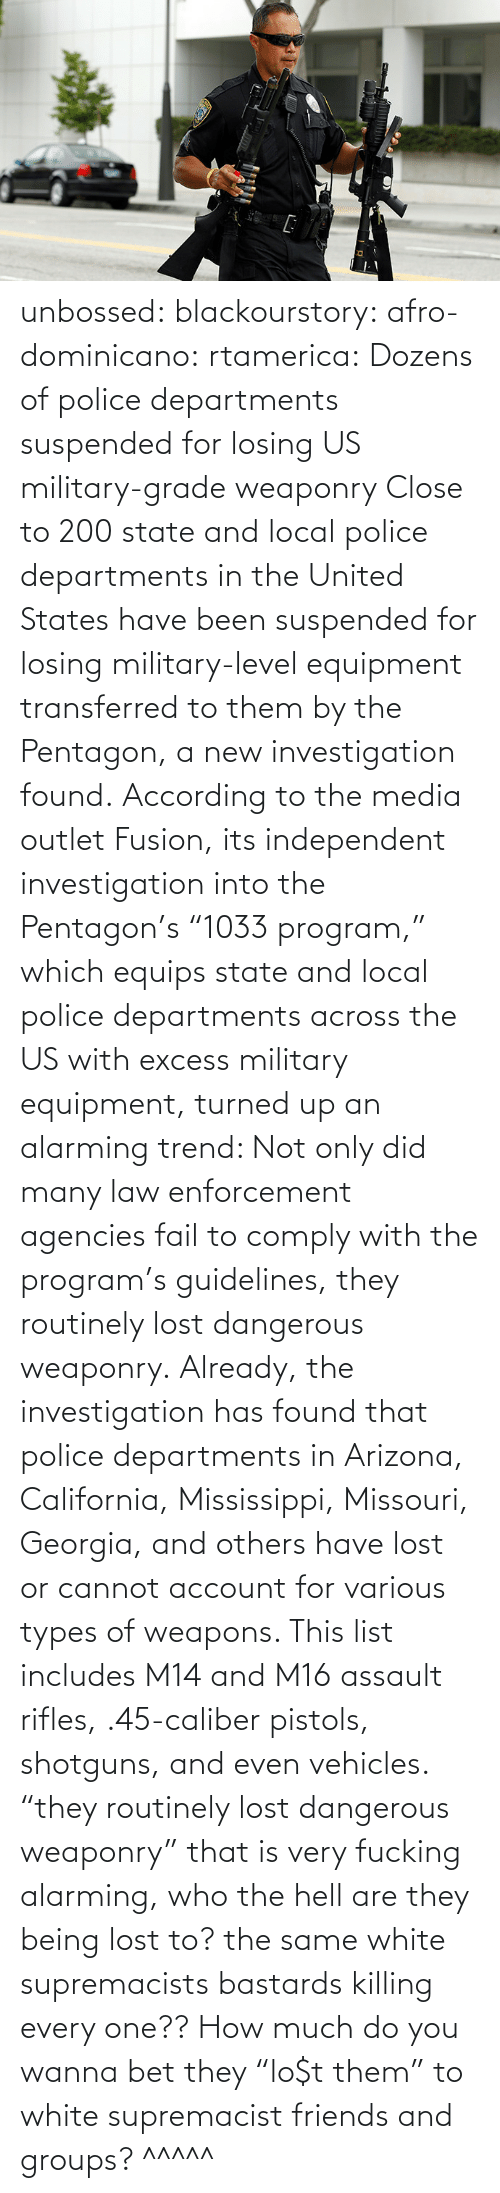 "Equipment: unbossed: blackourstory:  afro-dominicano:  rtamerica:  Dozens of police departments suspended for losing US military-grade weaponry Close to 200 state and local police departments in the United States have been suspended for losing military-level equipment transferred to them by the Pentagon, a new investigation found. According to the media outlet Fusion, its independent investigation into the Pentagon's ""1033 program,"" which equips state and local police departments across the US with excess military equipment, turned up an alarming trend: Not only did many law enforcement agencies fail to comply with the program's guidelines, they routinely lost dangerous weaponry. Already, the investigation has found that police departments in Arizona, California, Mississippi, Missouri, Georgia, and others have lost or cannot account for various types of weapons. This list includes M14 and M16 assault rifles, .45-caliber pistols, shotguns, and even vehicles.  ""they routinely lost dangerous weaponry"" that is very fucking alarming, who the hell are they being lost to? the same white supremacists bastards killing every one??  How much do you wanna bet they ""lo$t them"" to white supremacist friends and groups?   ^^^^^"